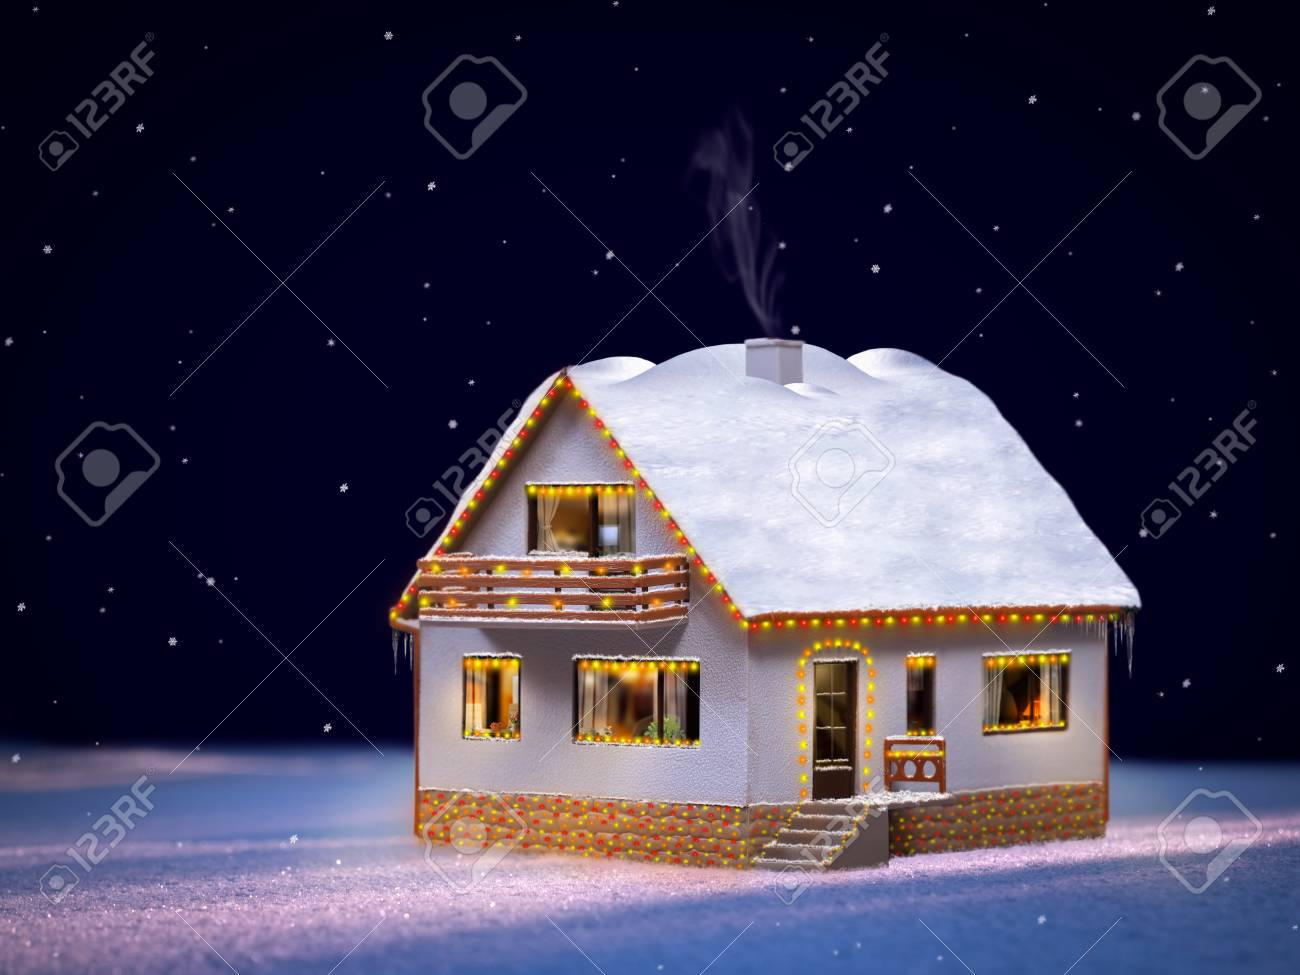 Christmas House.Beautiful Christmas House The House Is Decorated With Garlands